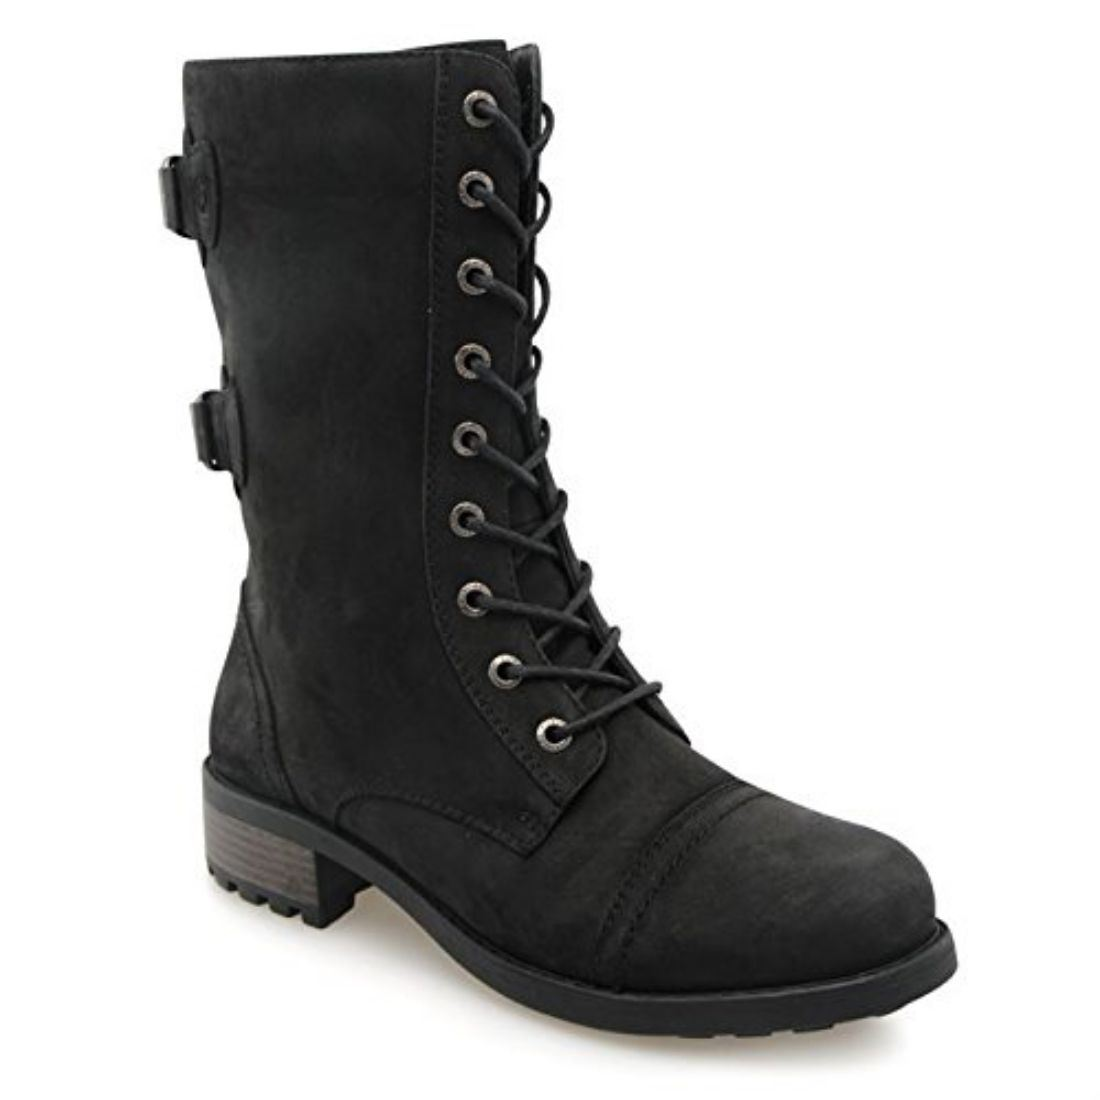 firetrap womens boots lace up side zip moulded